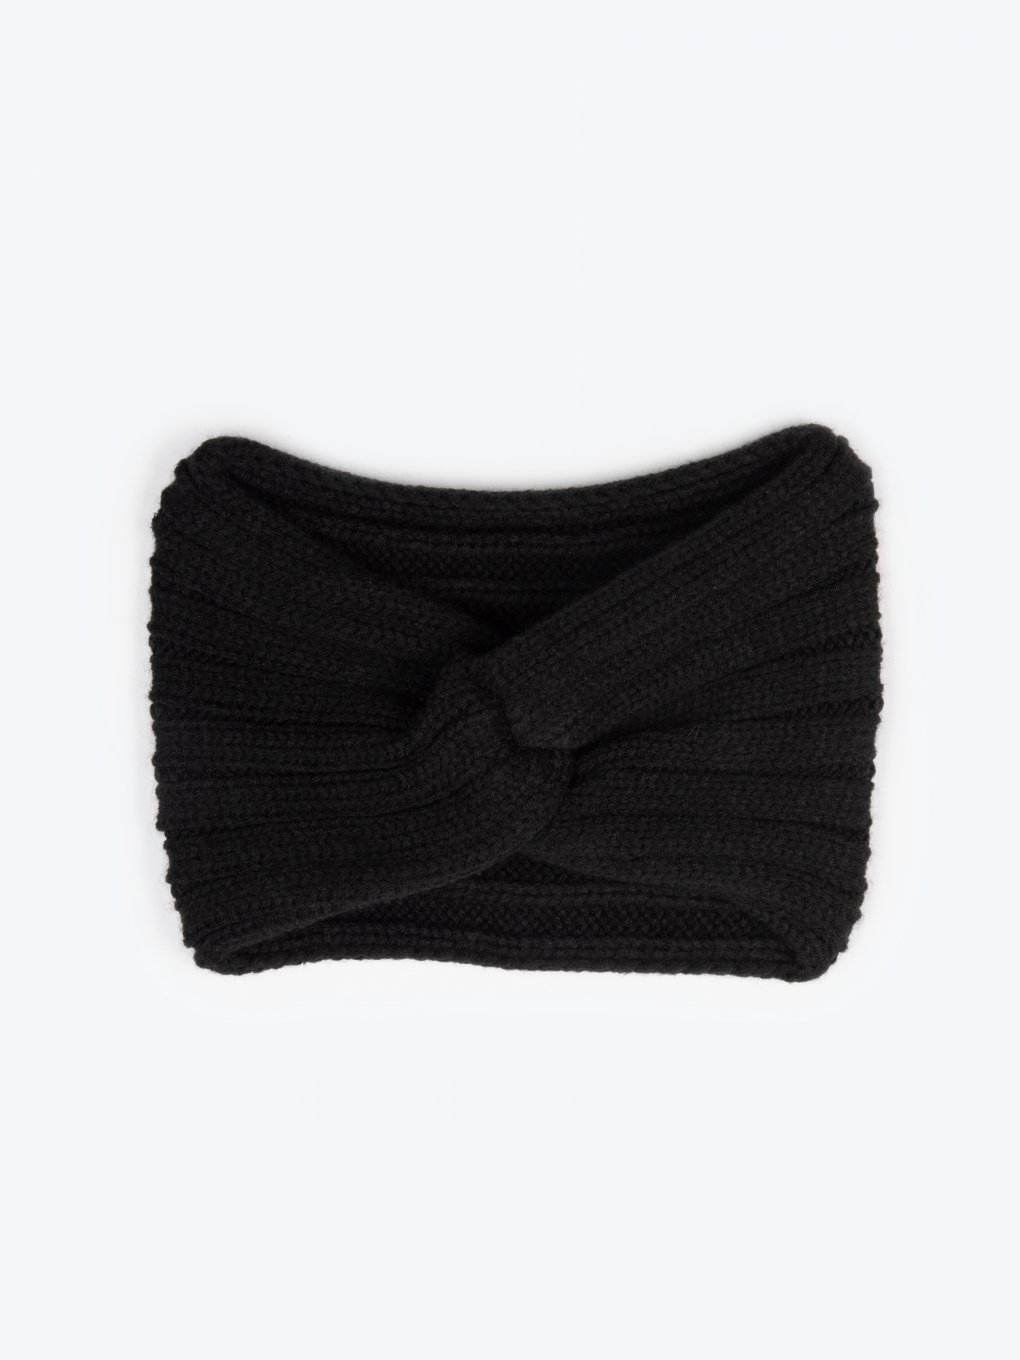 Headband with knot